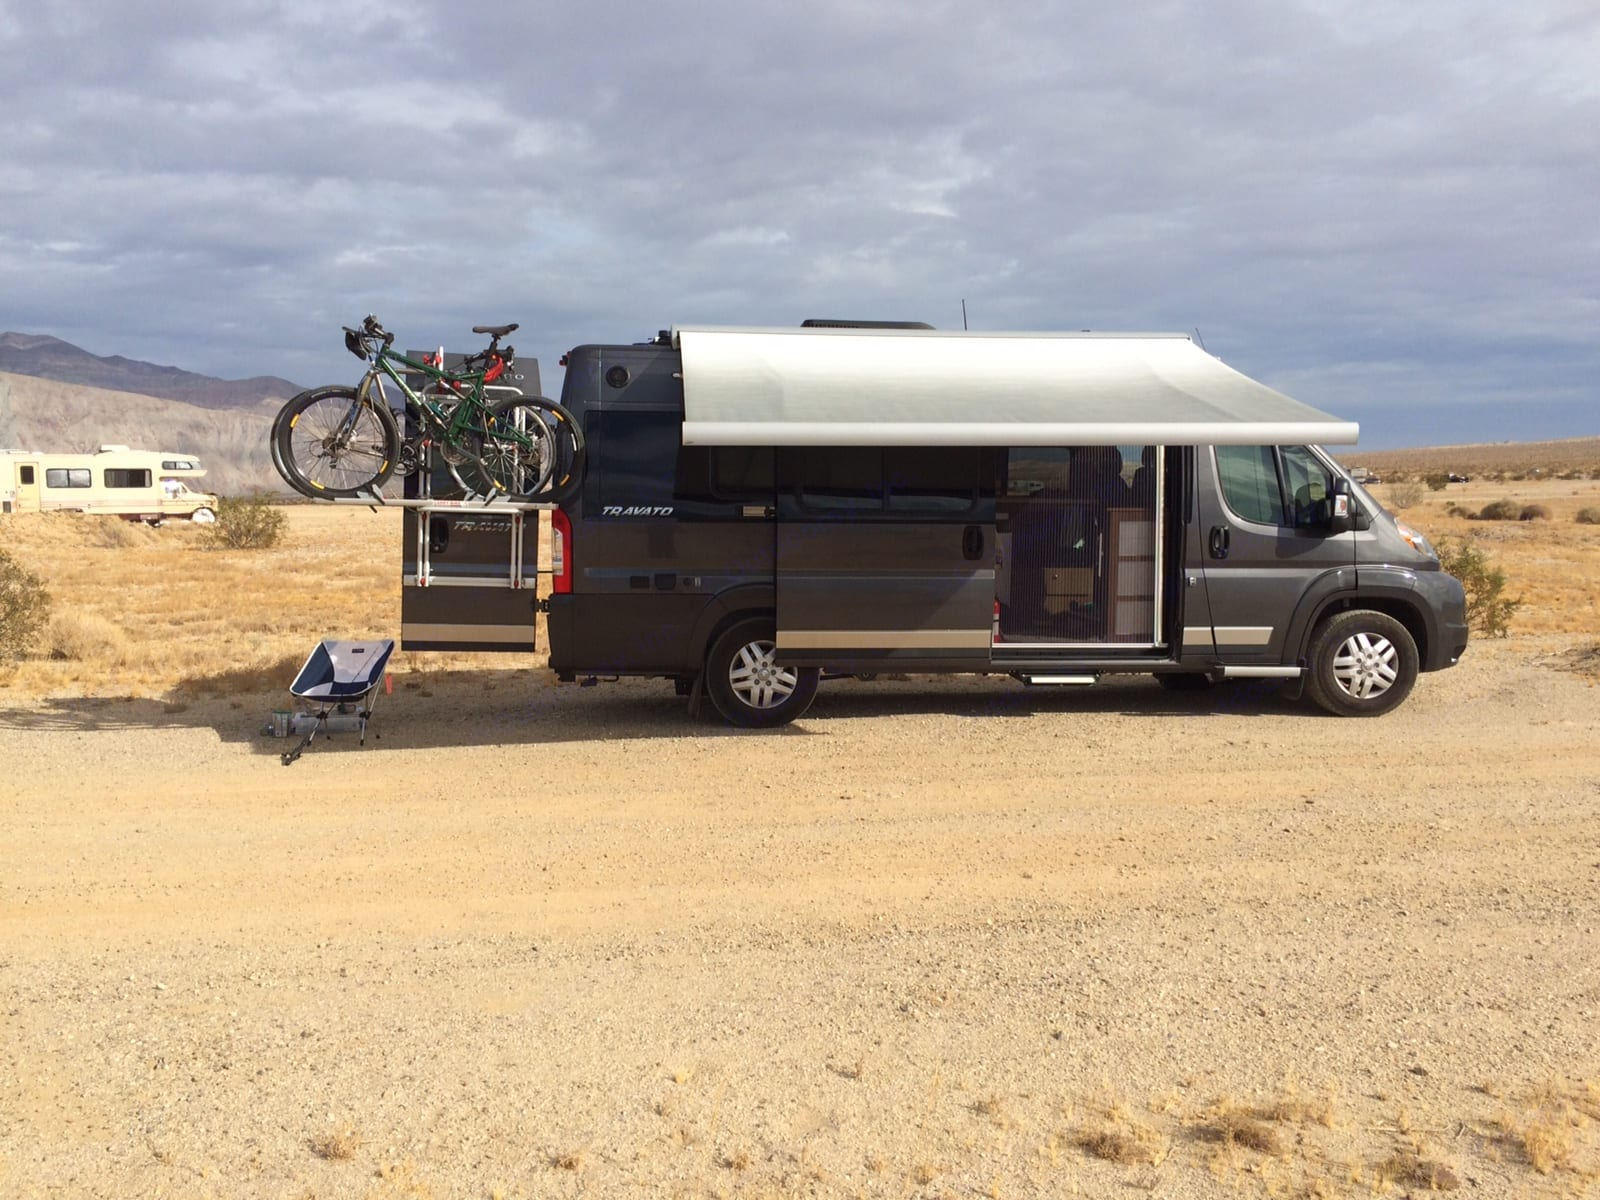 Comfortable and practical in a city, or the hot desert. Winnebago Travato 2017